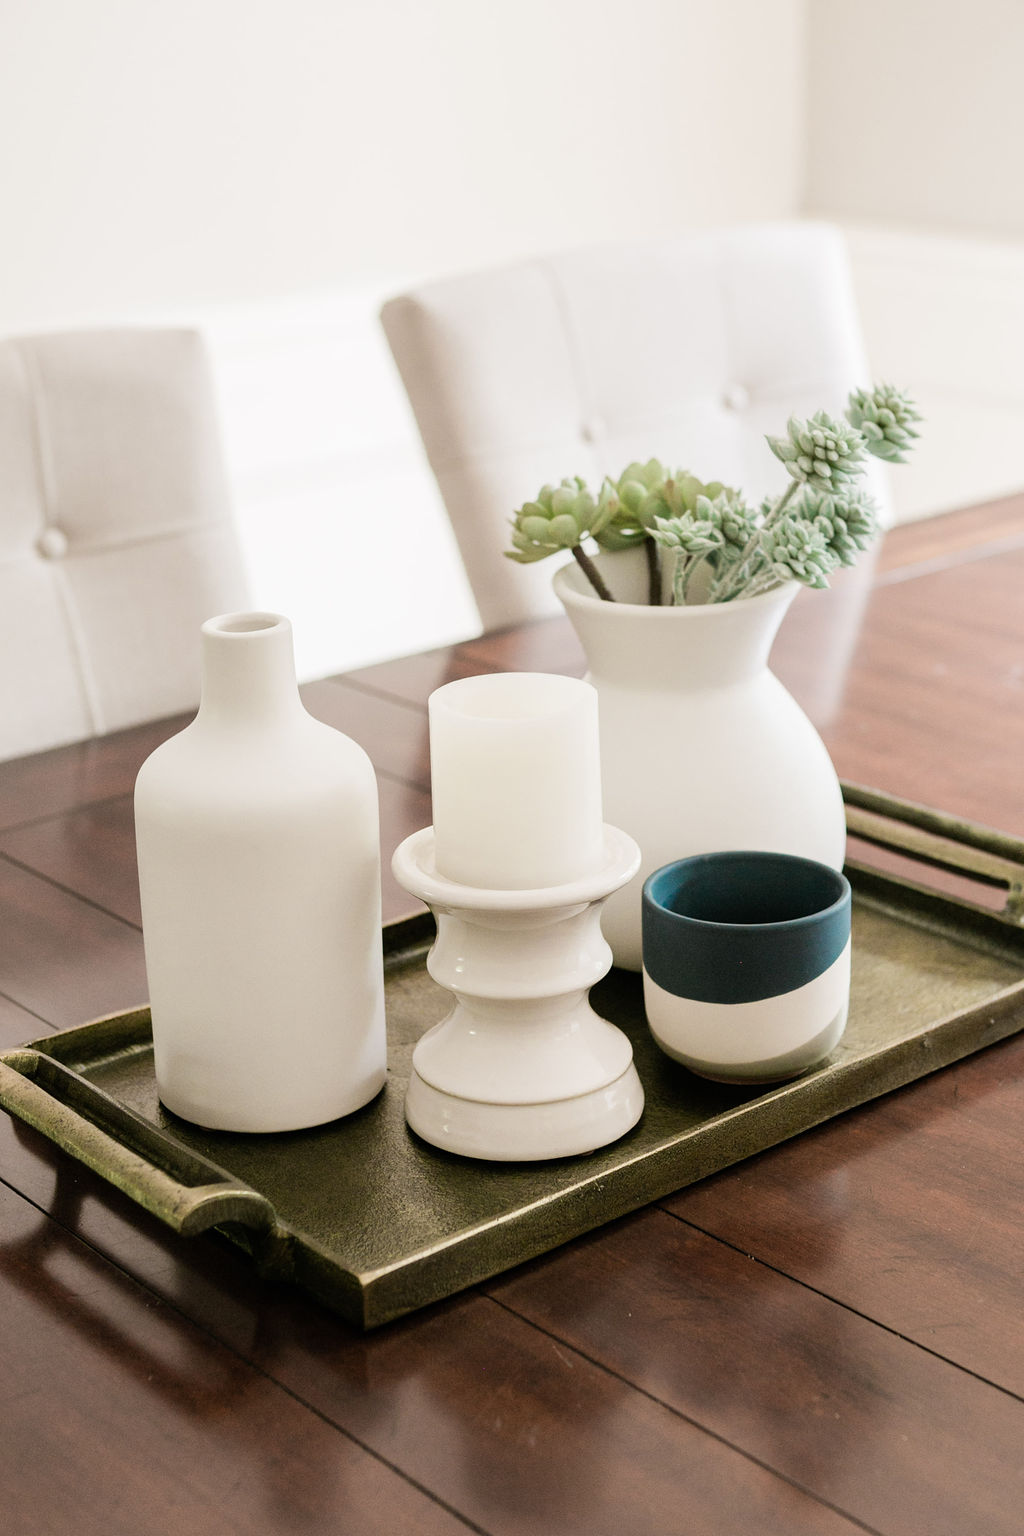 Accessories, vases and a bronze tray on a solid wood table styled by an interior decorator.